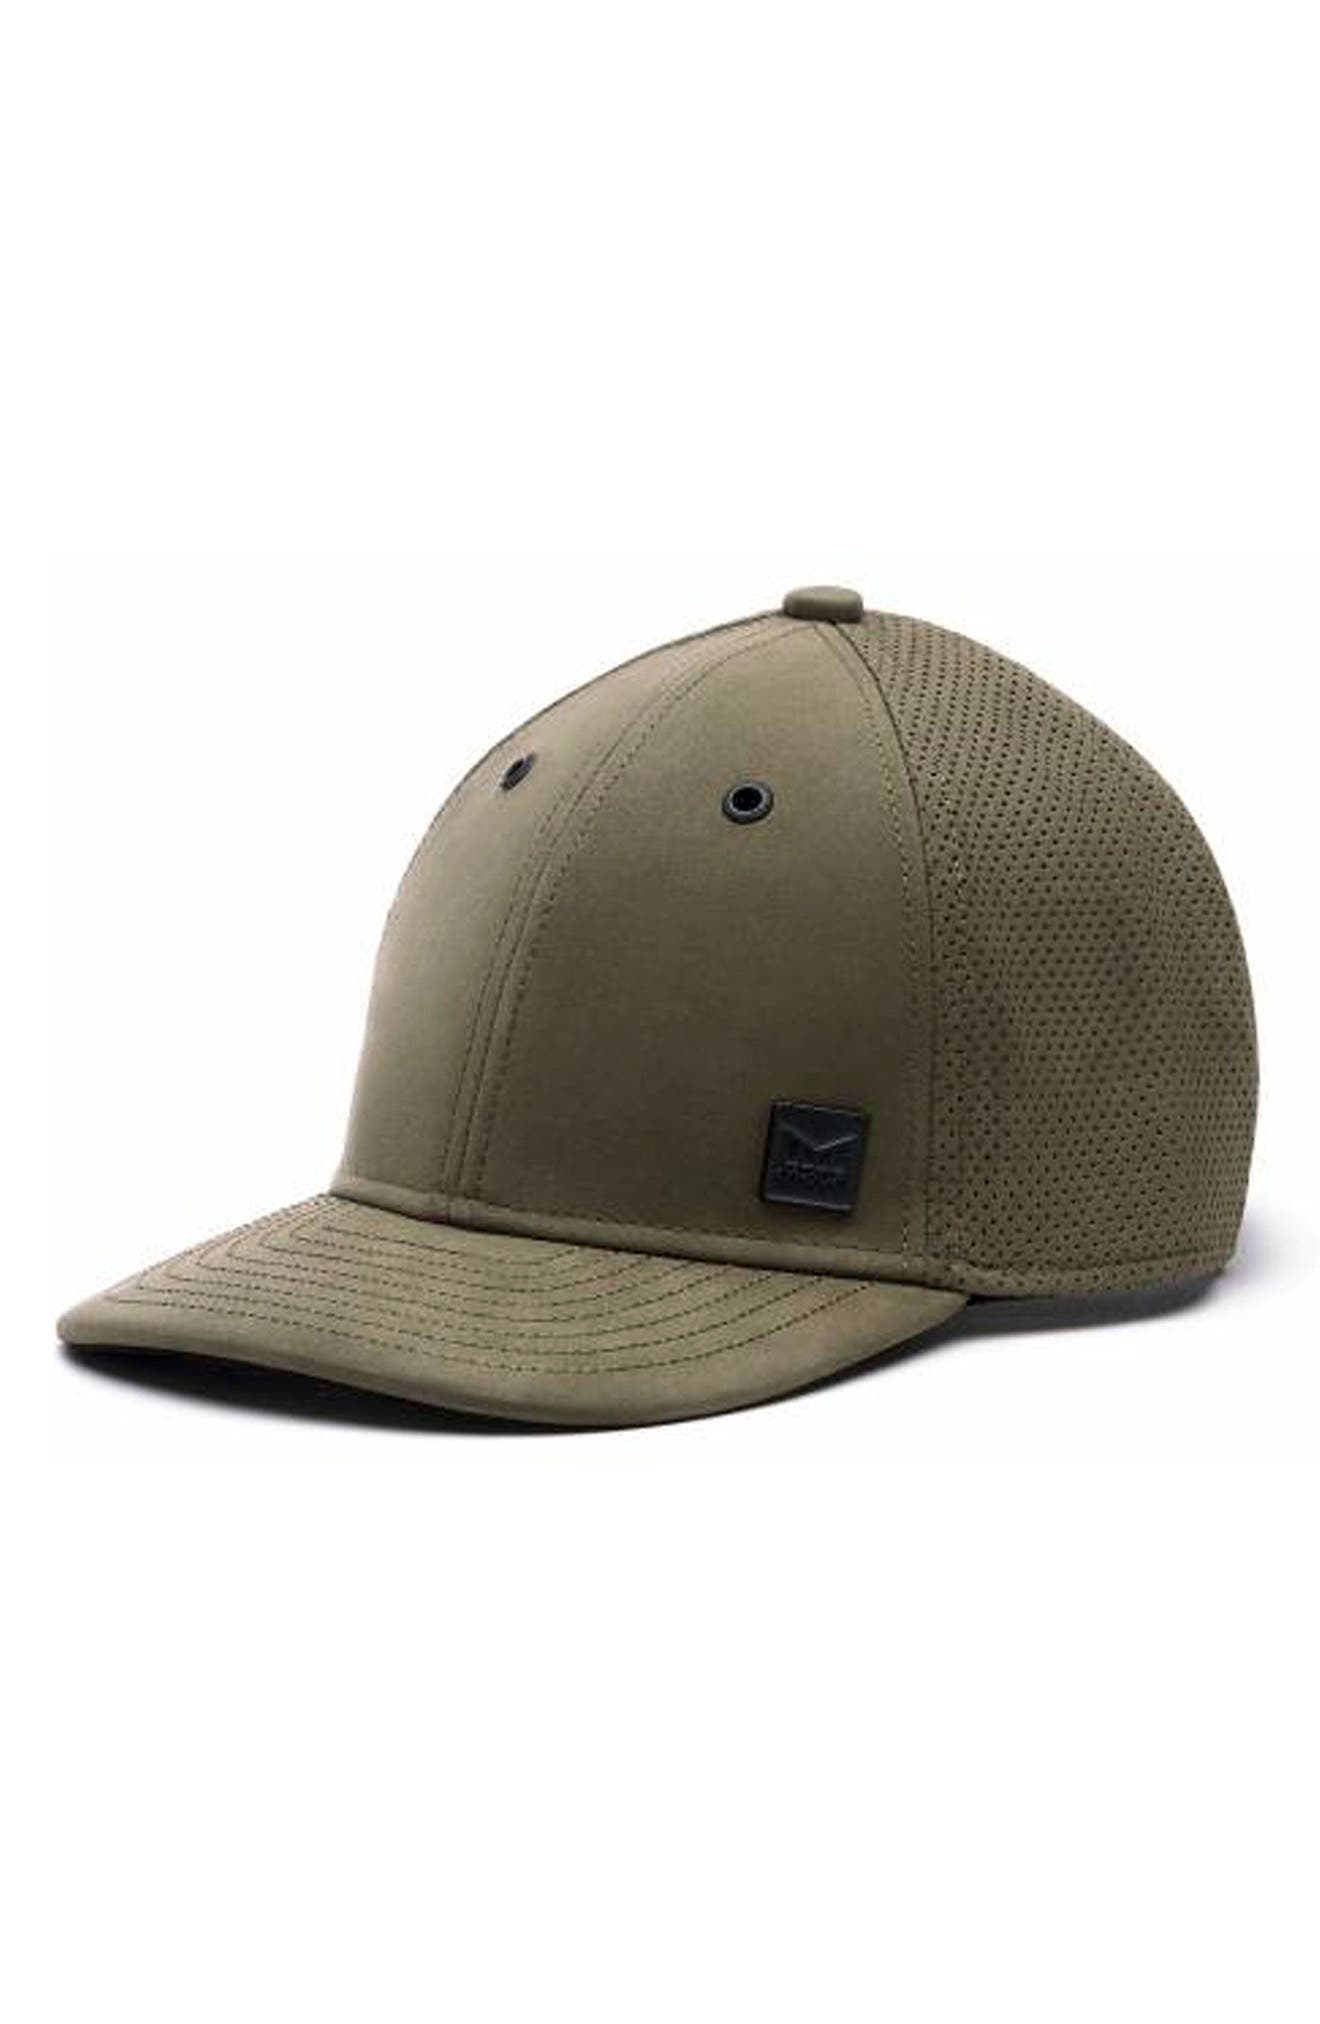 Voyage Elite Leather Ball Cap,                         Main,                         color, Moss